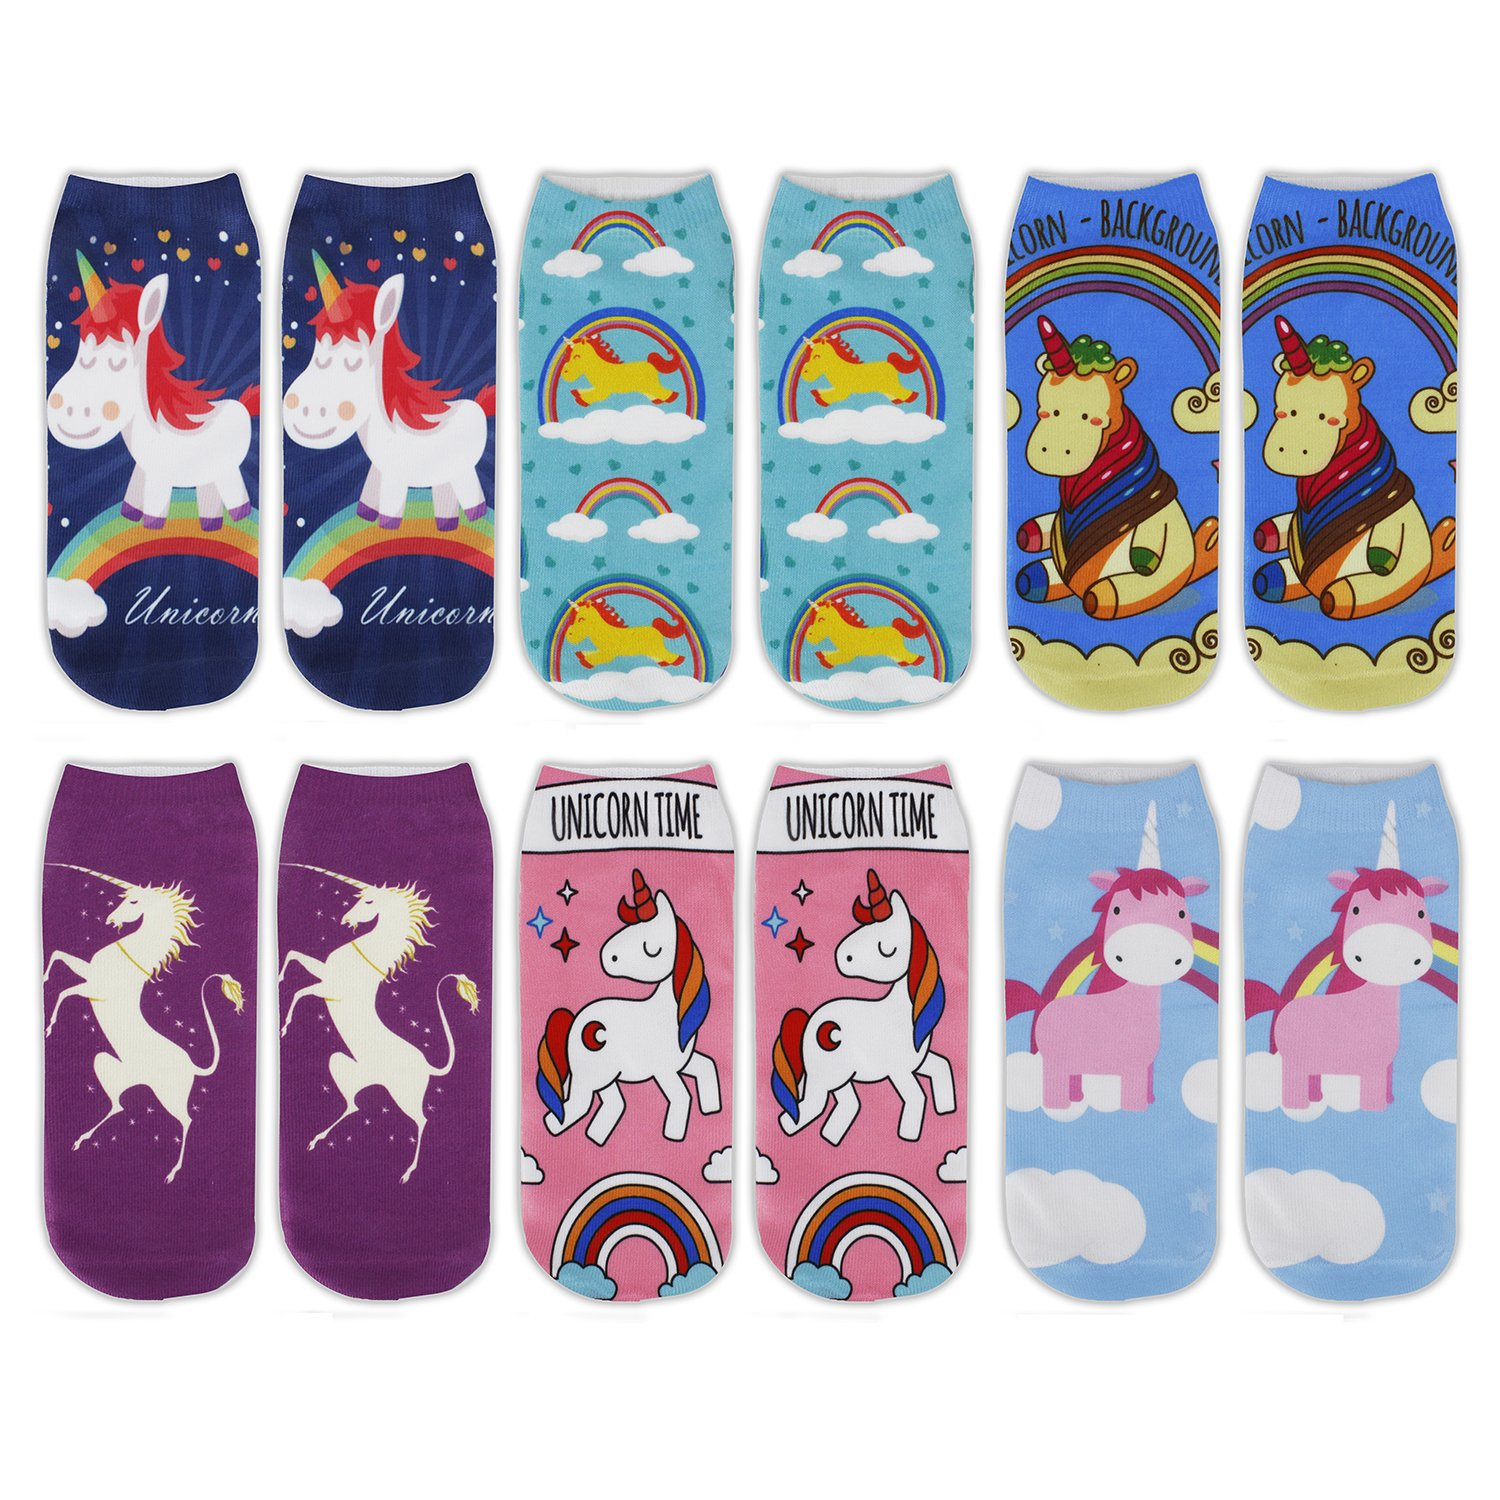 Unicorn Ankle Socks Women Girls Funny Halloween Novelty Cute Cat Dog 3D Printed Colorful Causal Socks